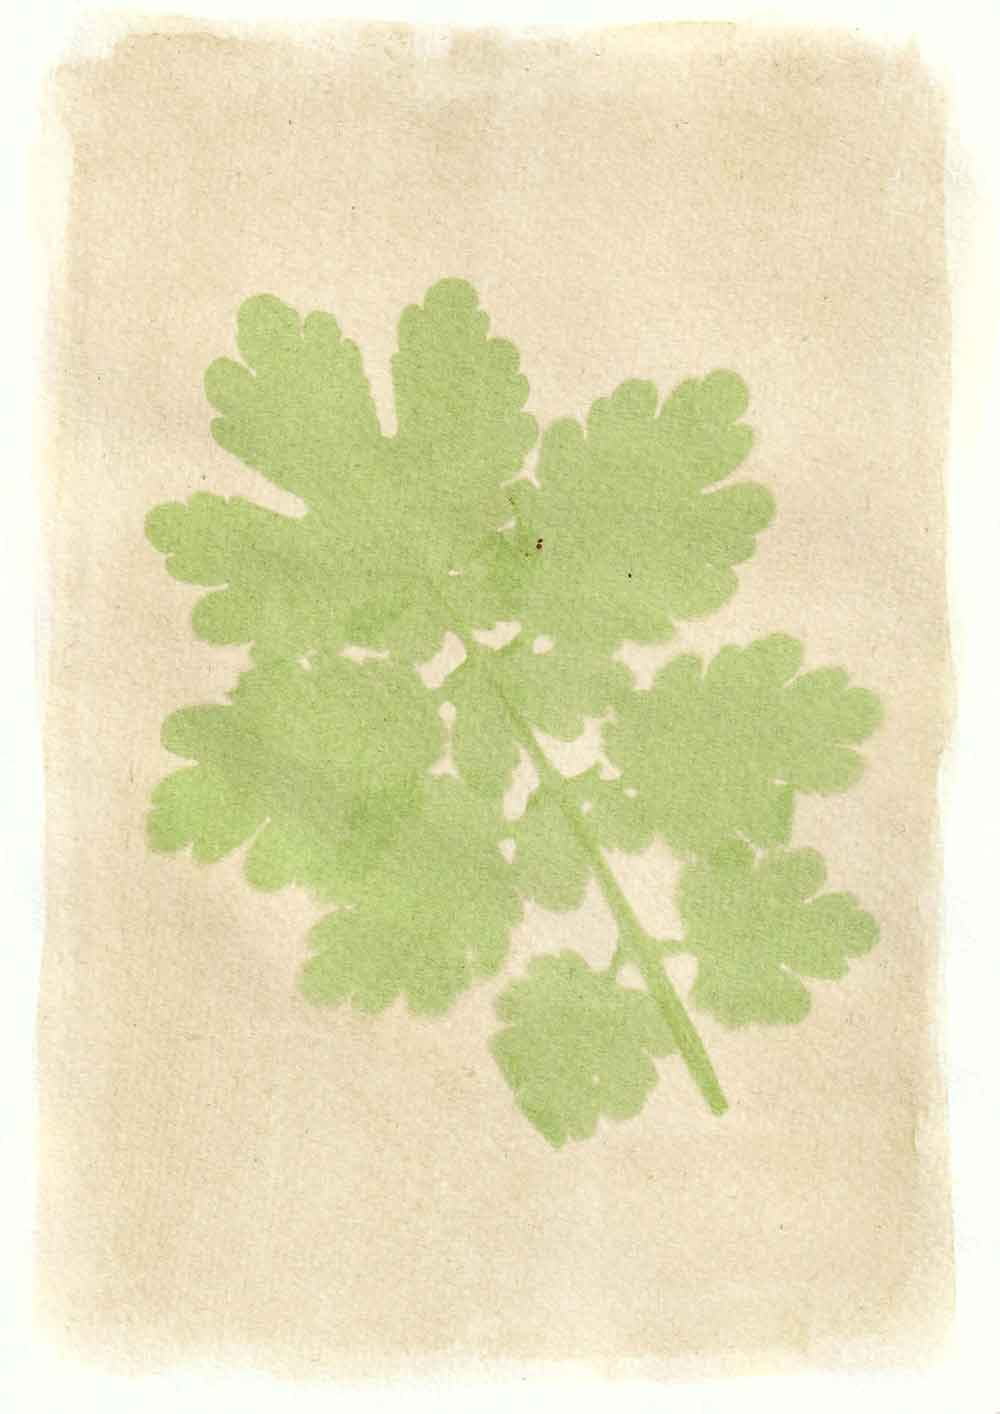 Greater celanine anthotype prints by Tim Boddy